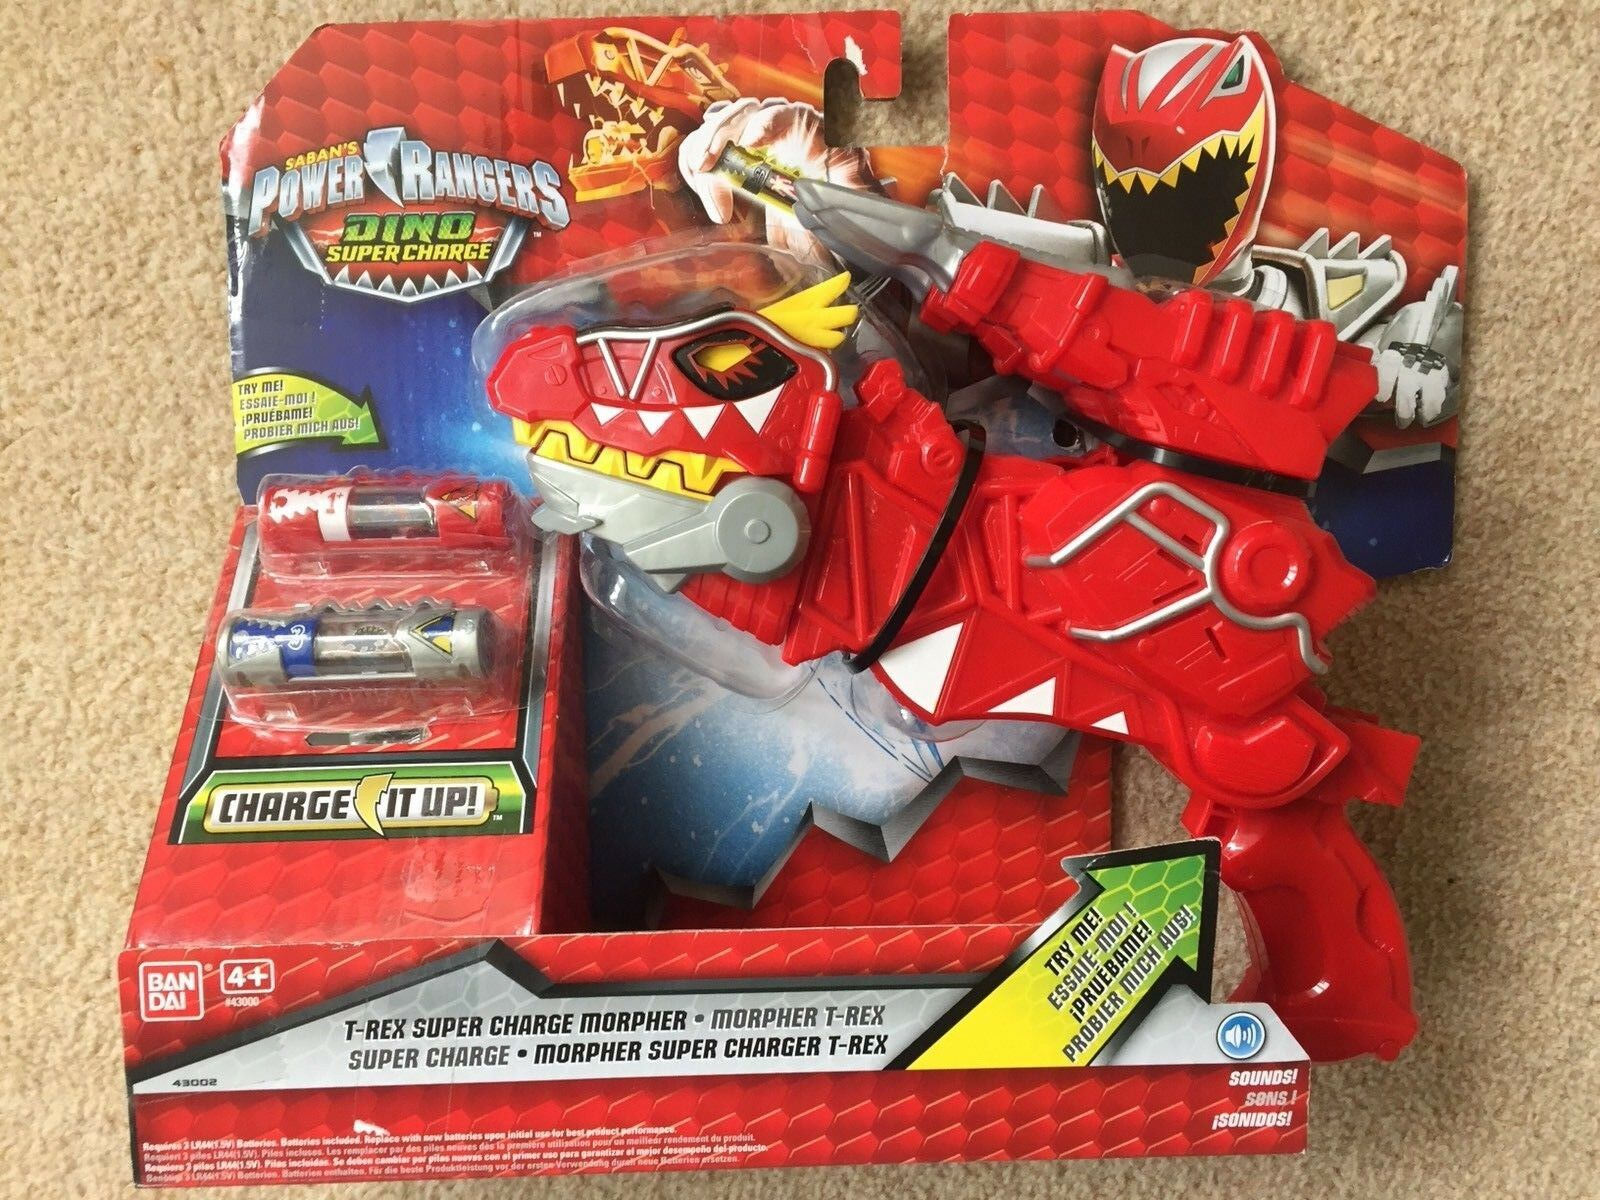 Power Rangers Dino Super Charge Deluxe T-Rex Morpher ROT Toy Gun New